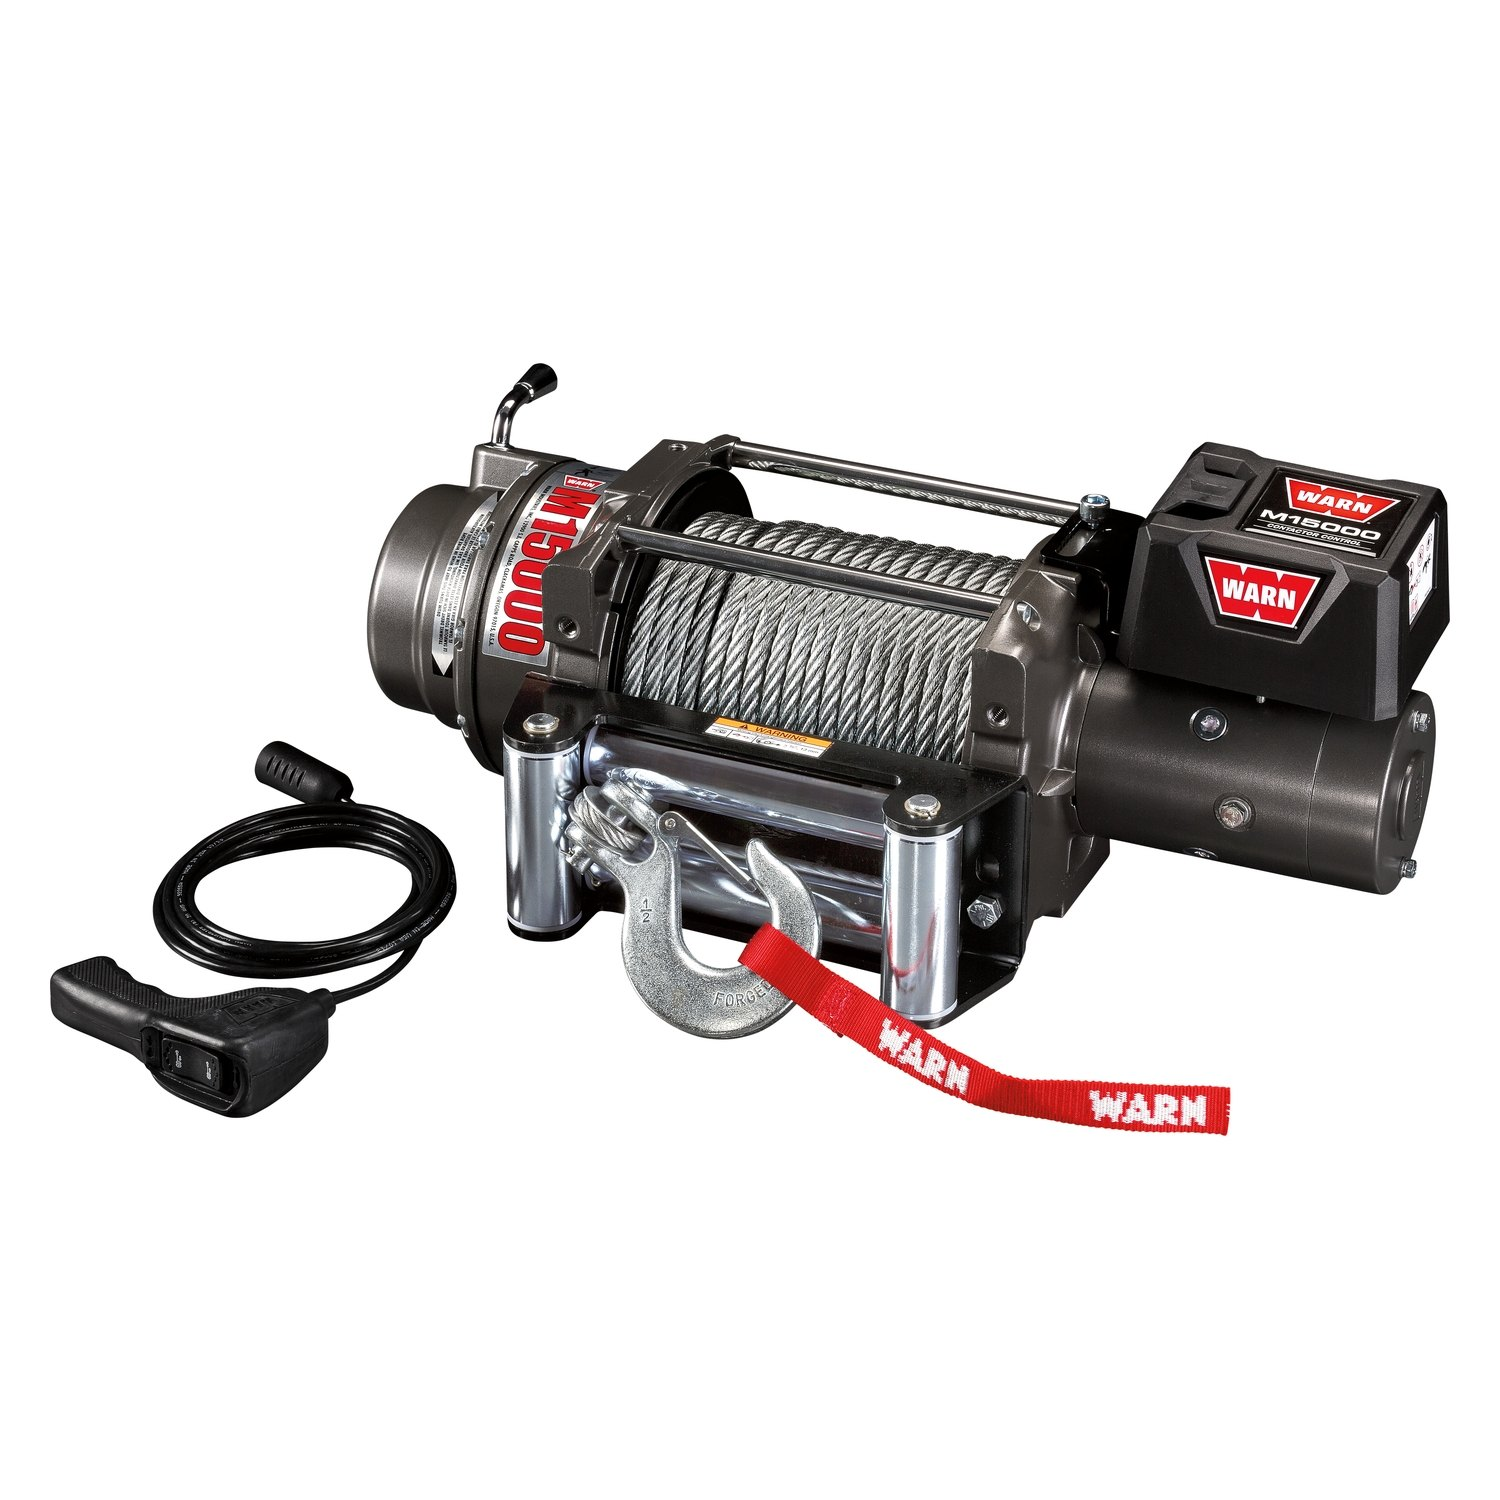 WARN® 47801 - 15,000 lbs M Series Self-Recovery Electric Winch with on